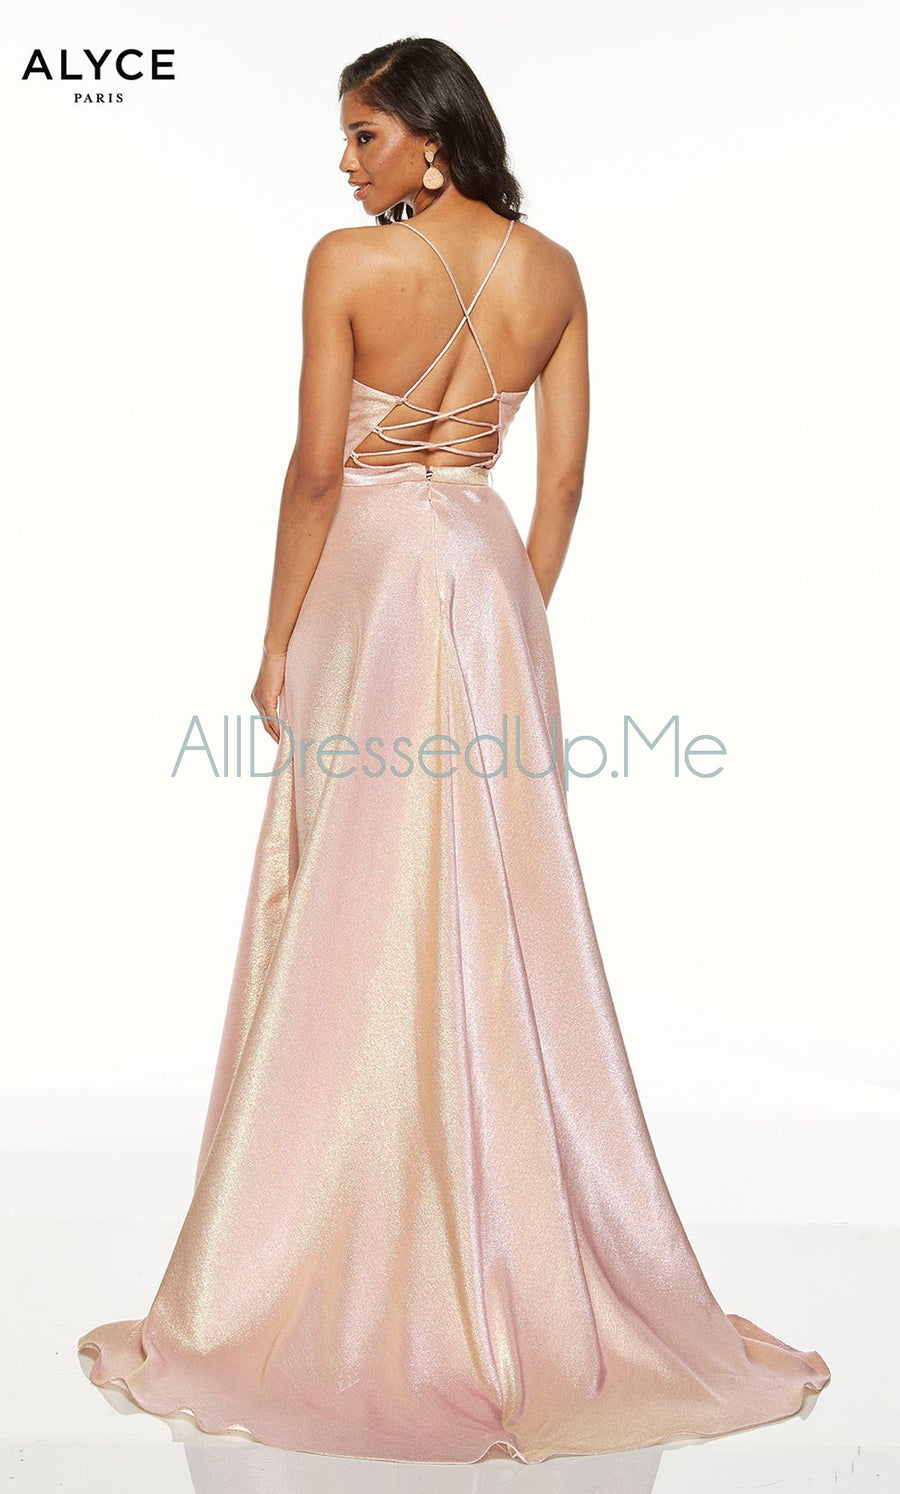 Alyce Paris - 60712 - All Dressed Up, Prom/Party Dress - - Dresses Two Piece Cut Out Sweetheart Halter Low Back High Neck Print Beaded Chiffon Jersey Fitted Sexy Satin Lace Jeweled Sparkle Shimmer Sleeveless Stunning Gorgeous Modest See Through Transparent Glitter Special Occasions Event Chattanooga Hixson Shops Boutiques Tennessee TN Georgia GA MSRP Lowest Prices Sale Discount